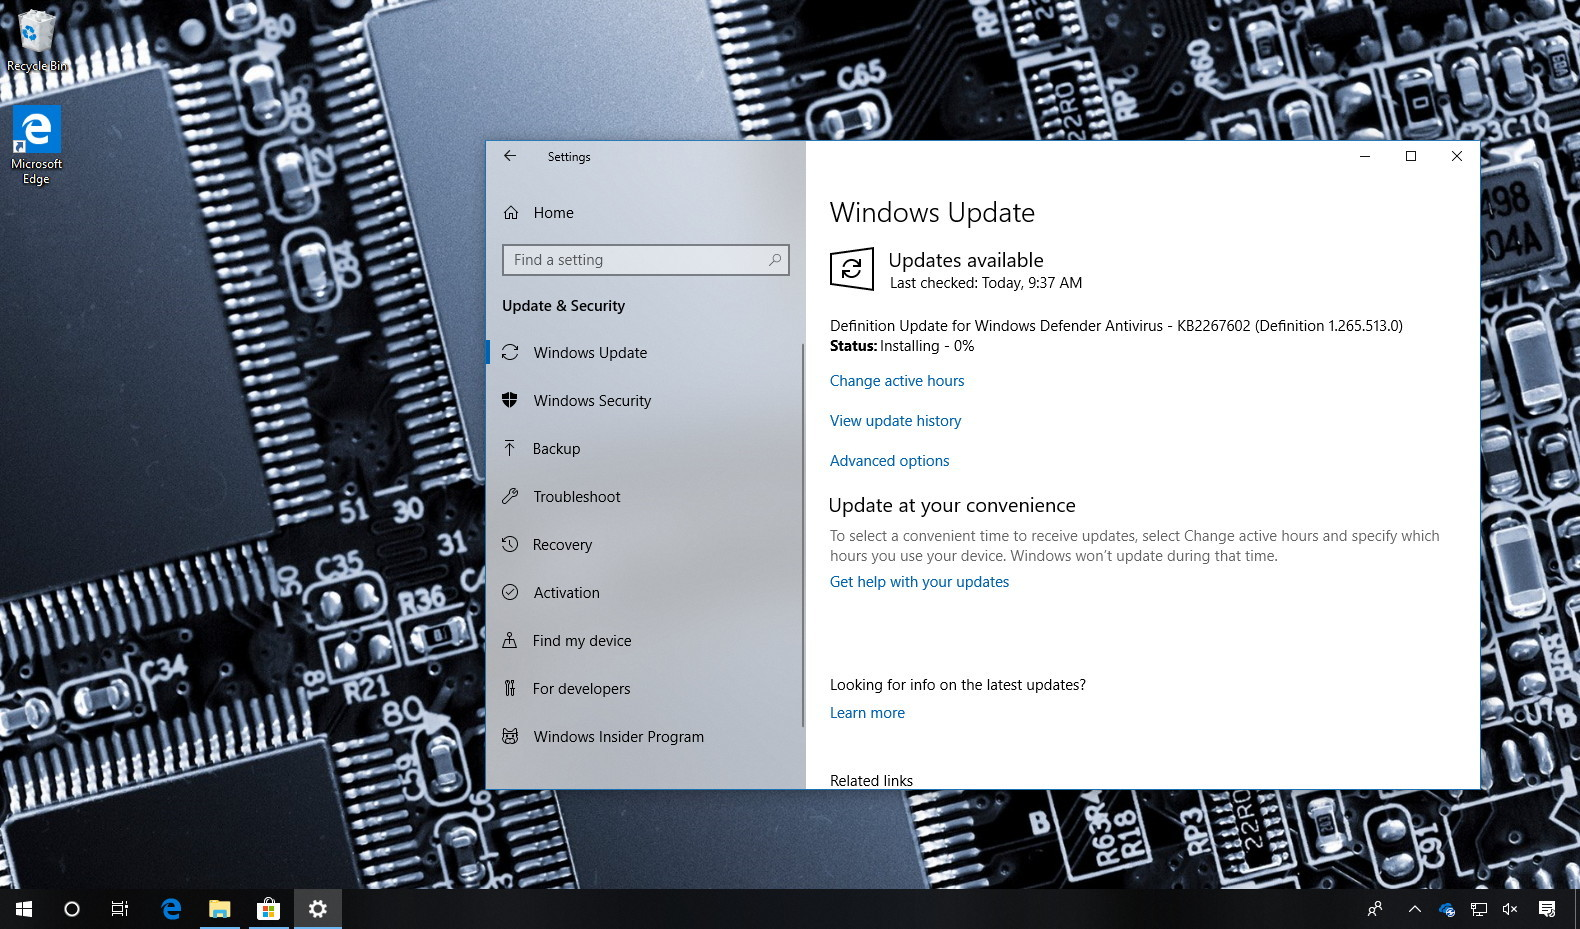 Windows 10 version 1803 delayed